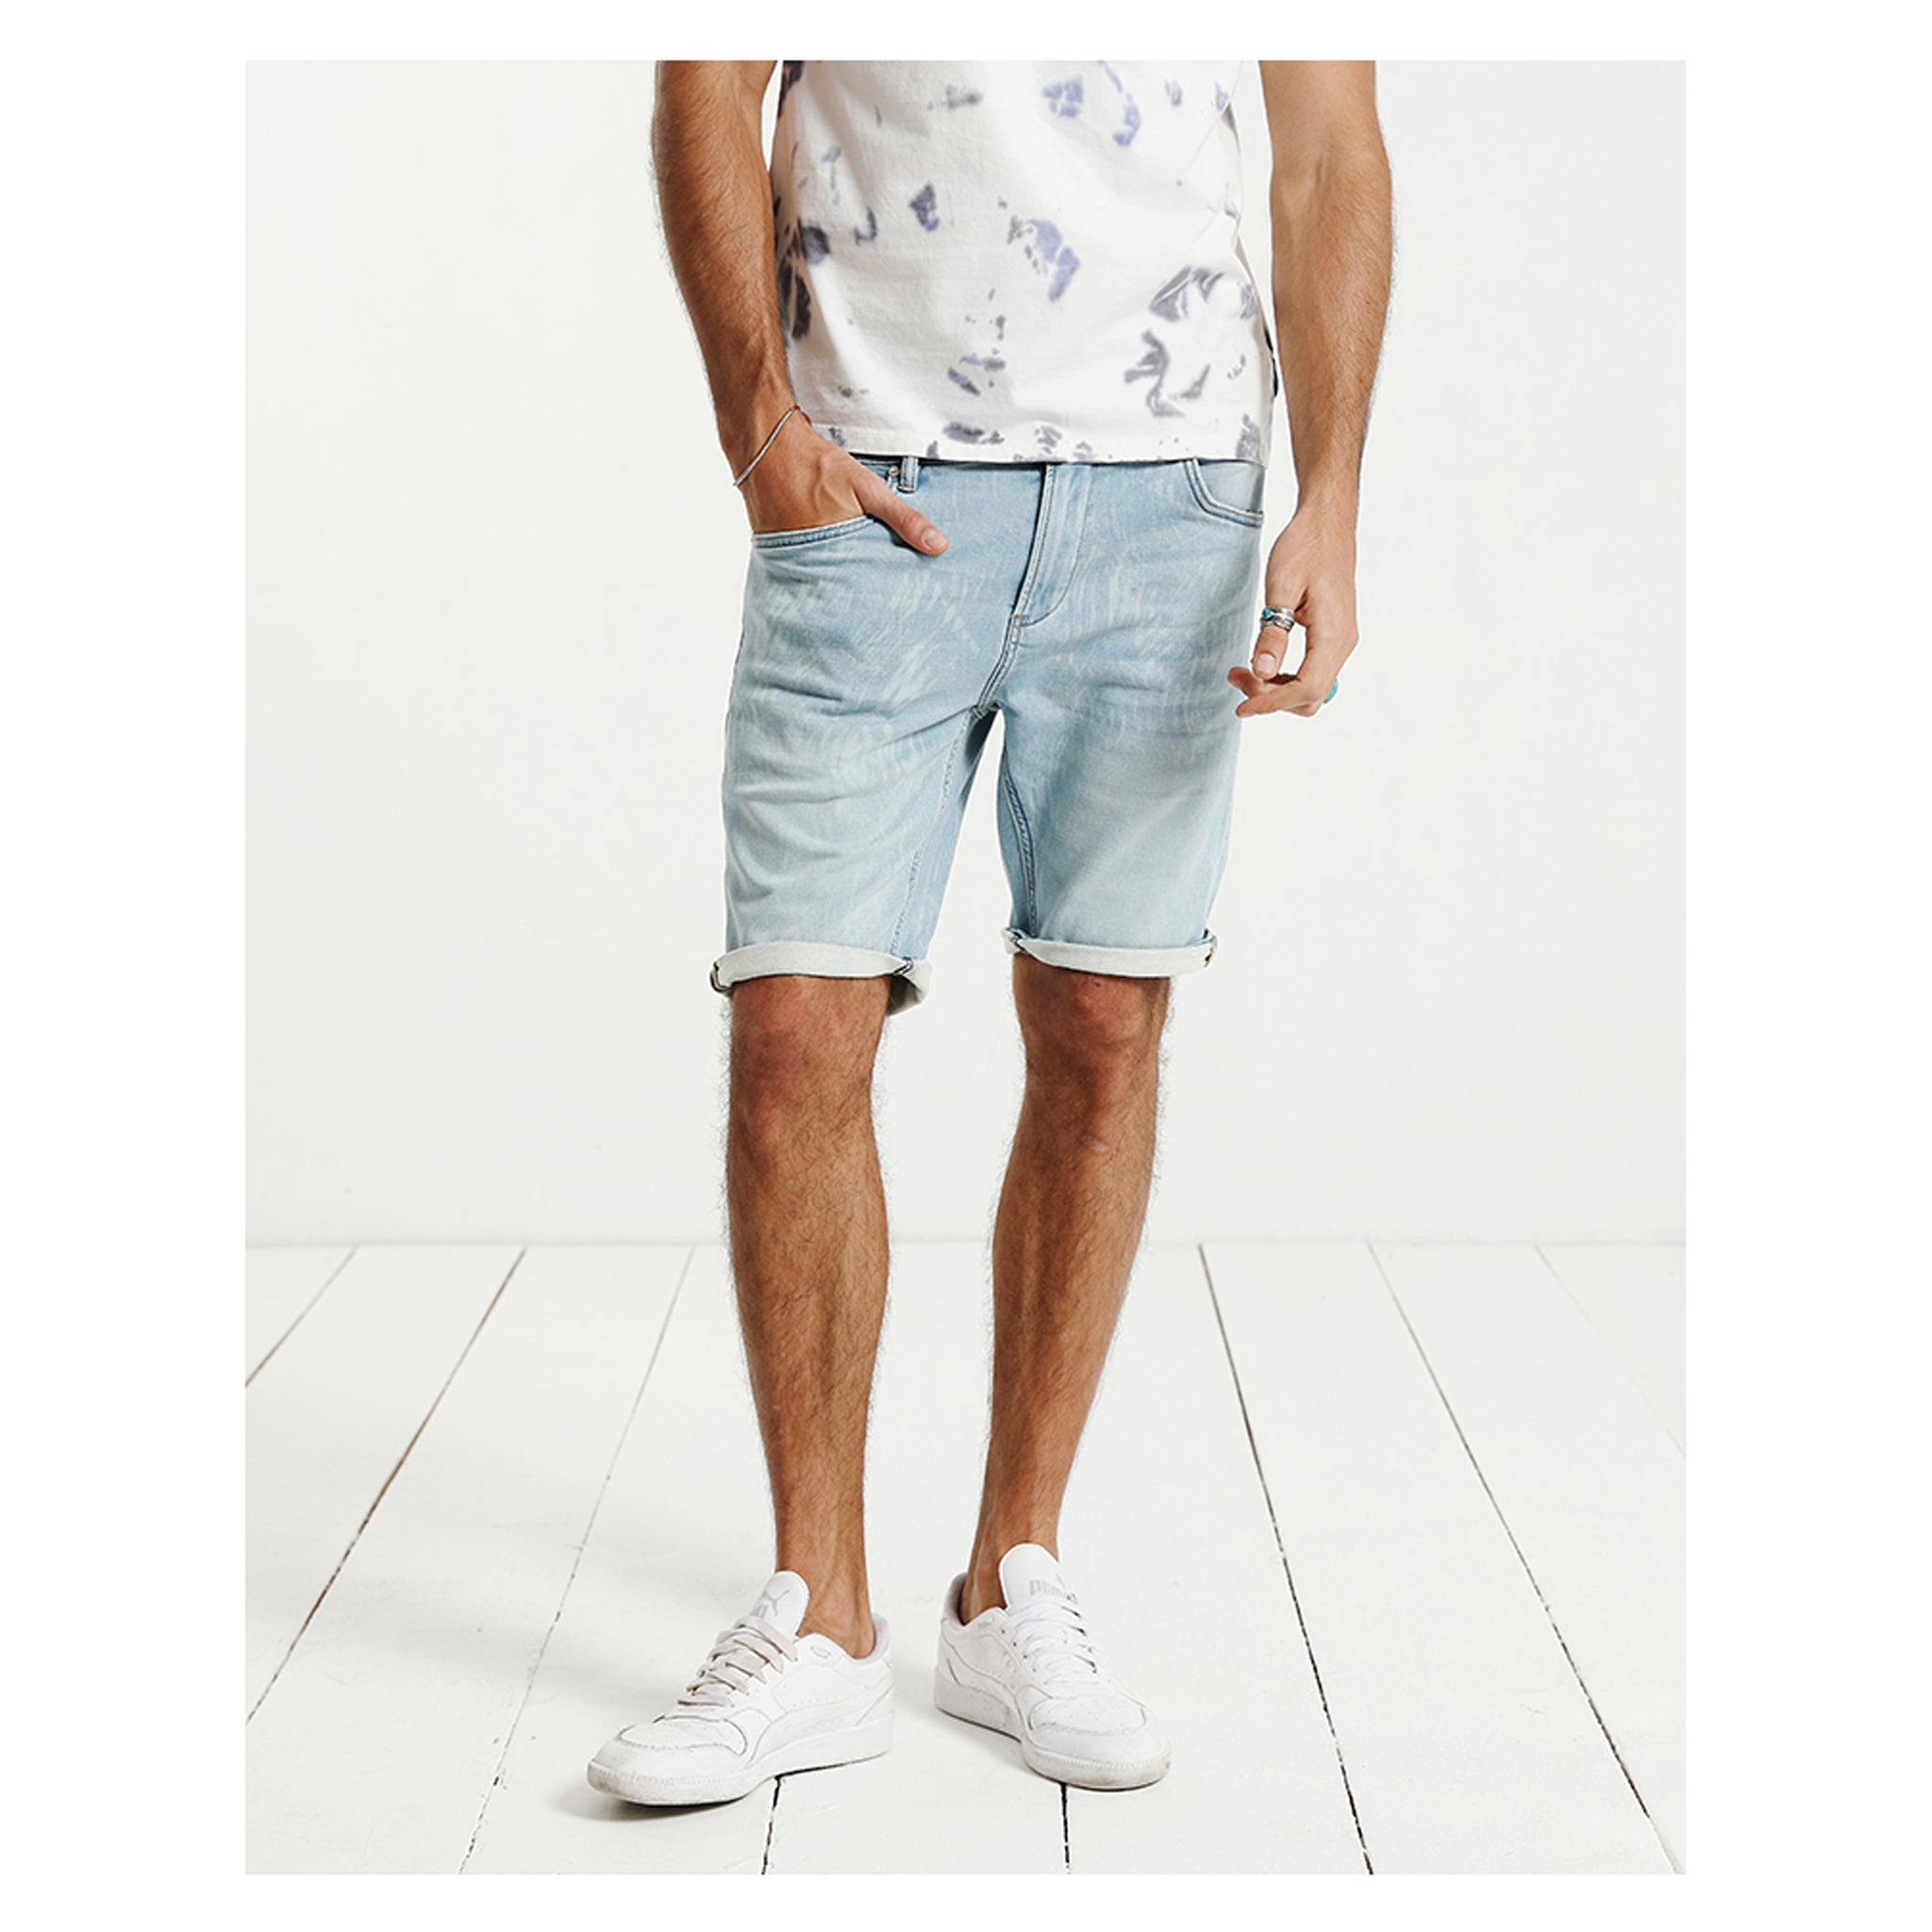 New Summer Denim Fashion Shorts Bleached Slim Fit Knee-Length